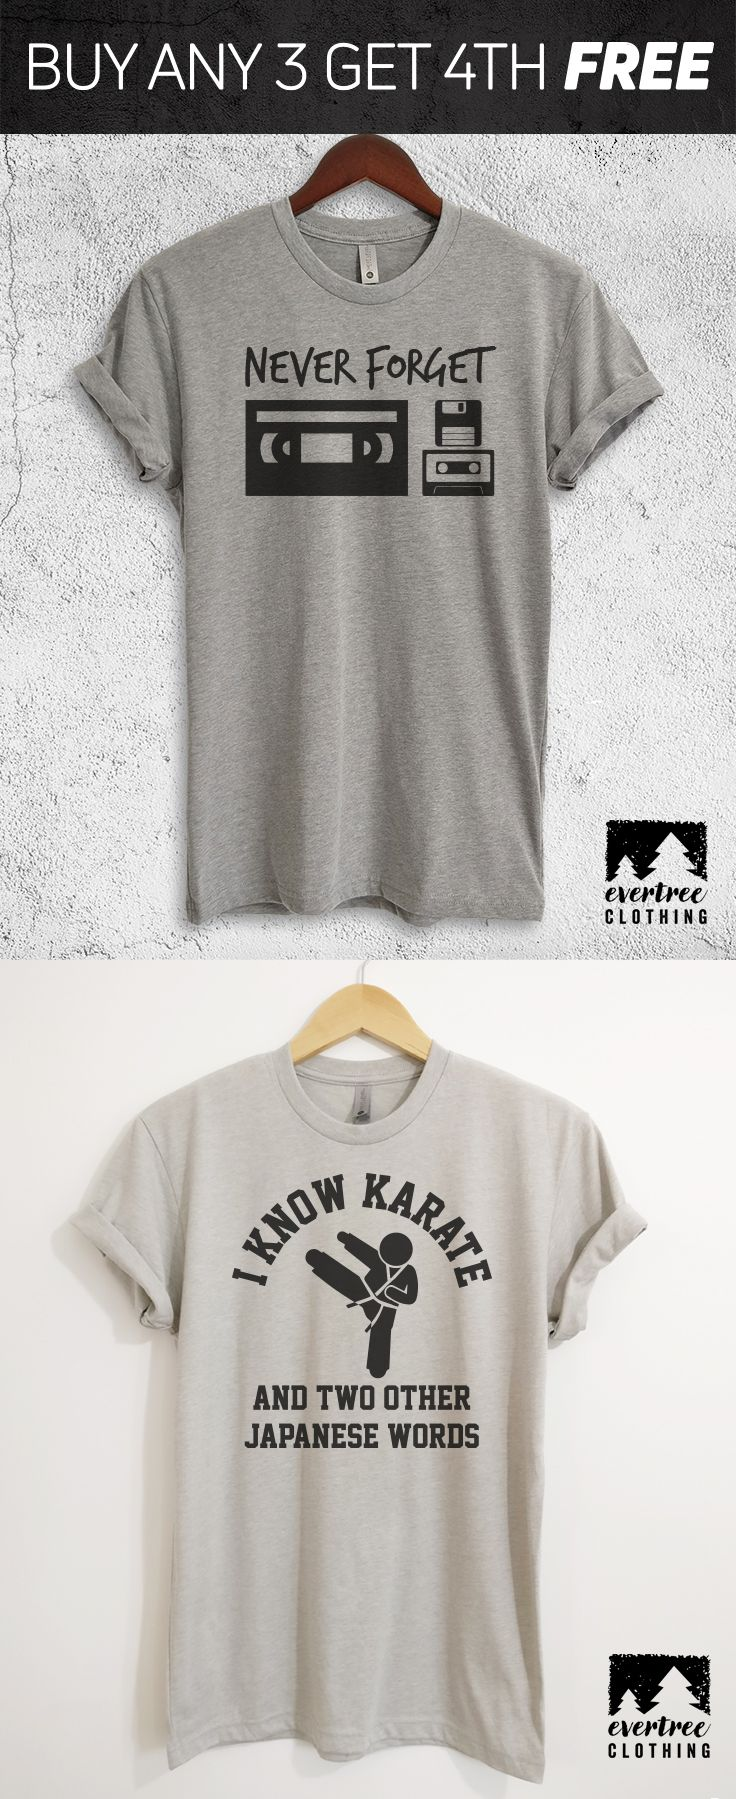 Never Forget 80s Shirt   I Know Karate And Two Other Japanese Words Shirt